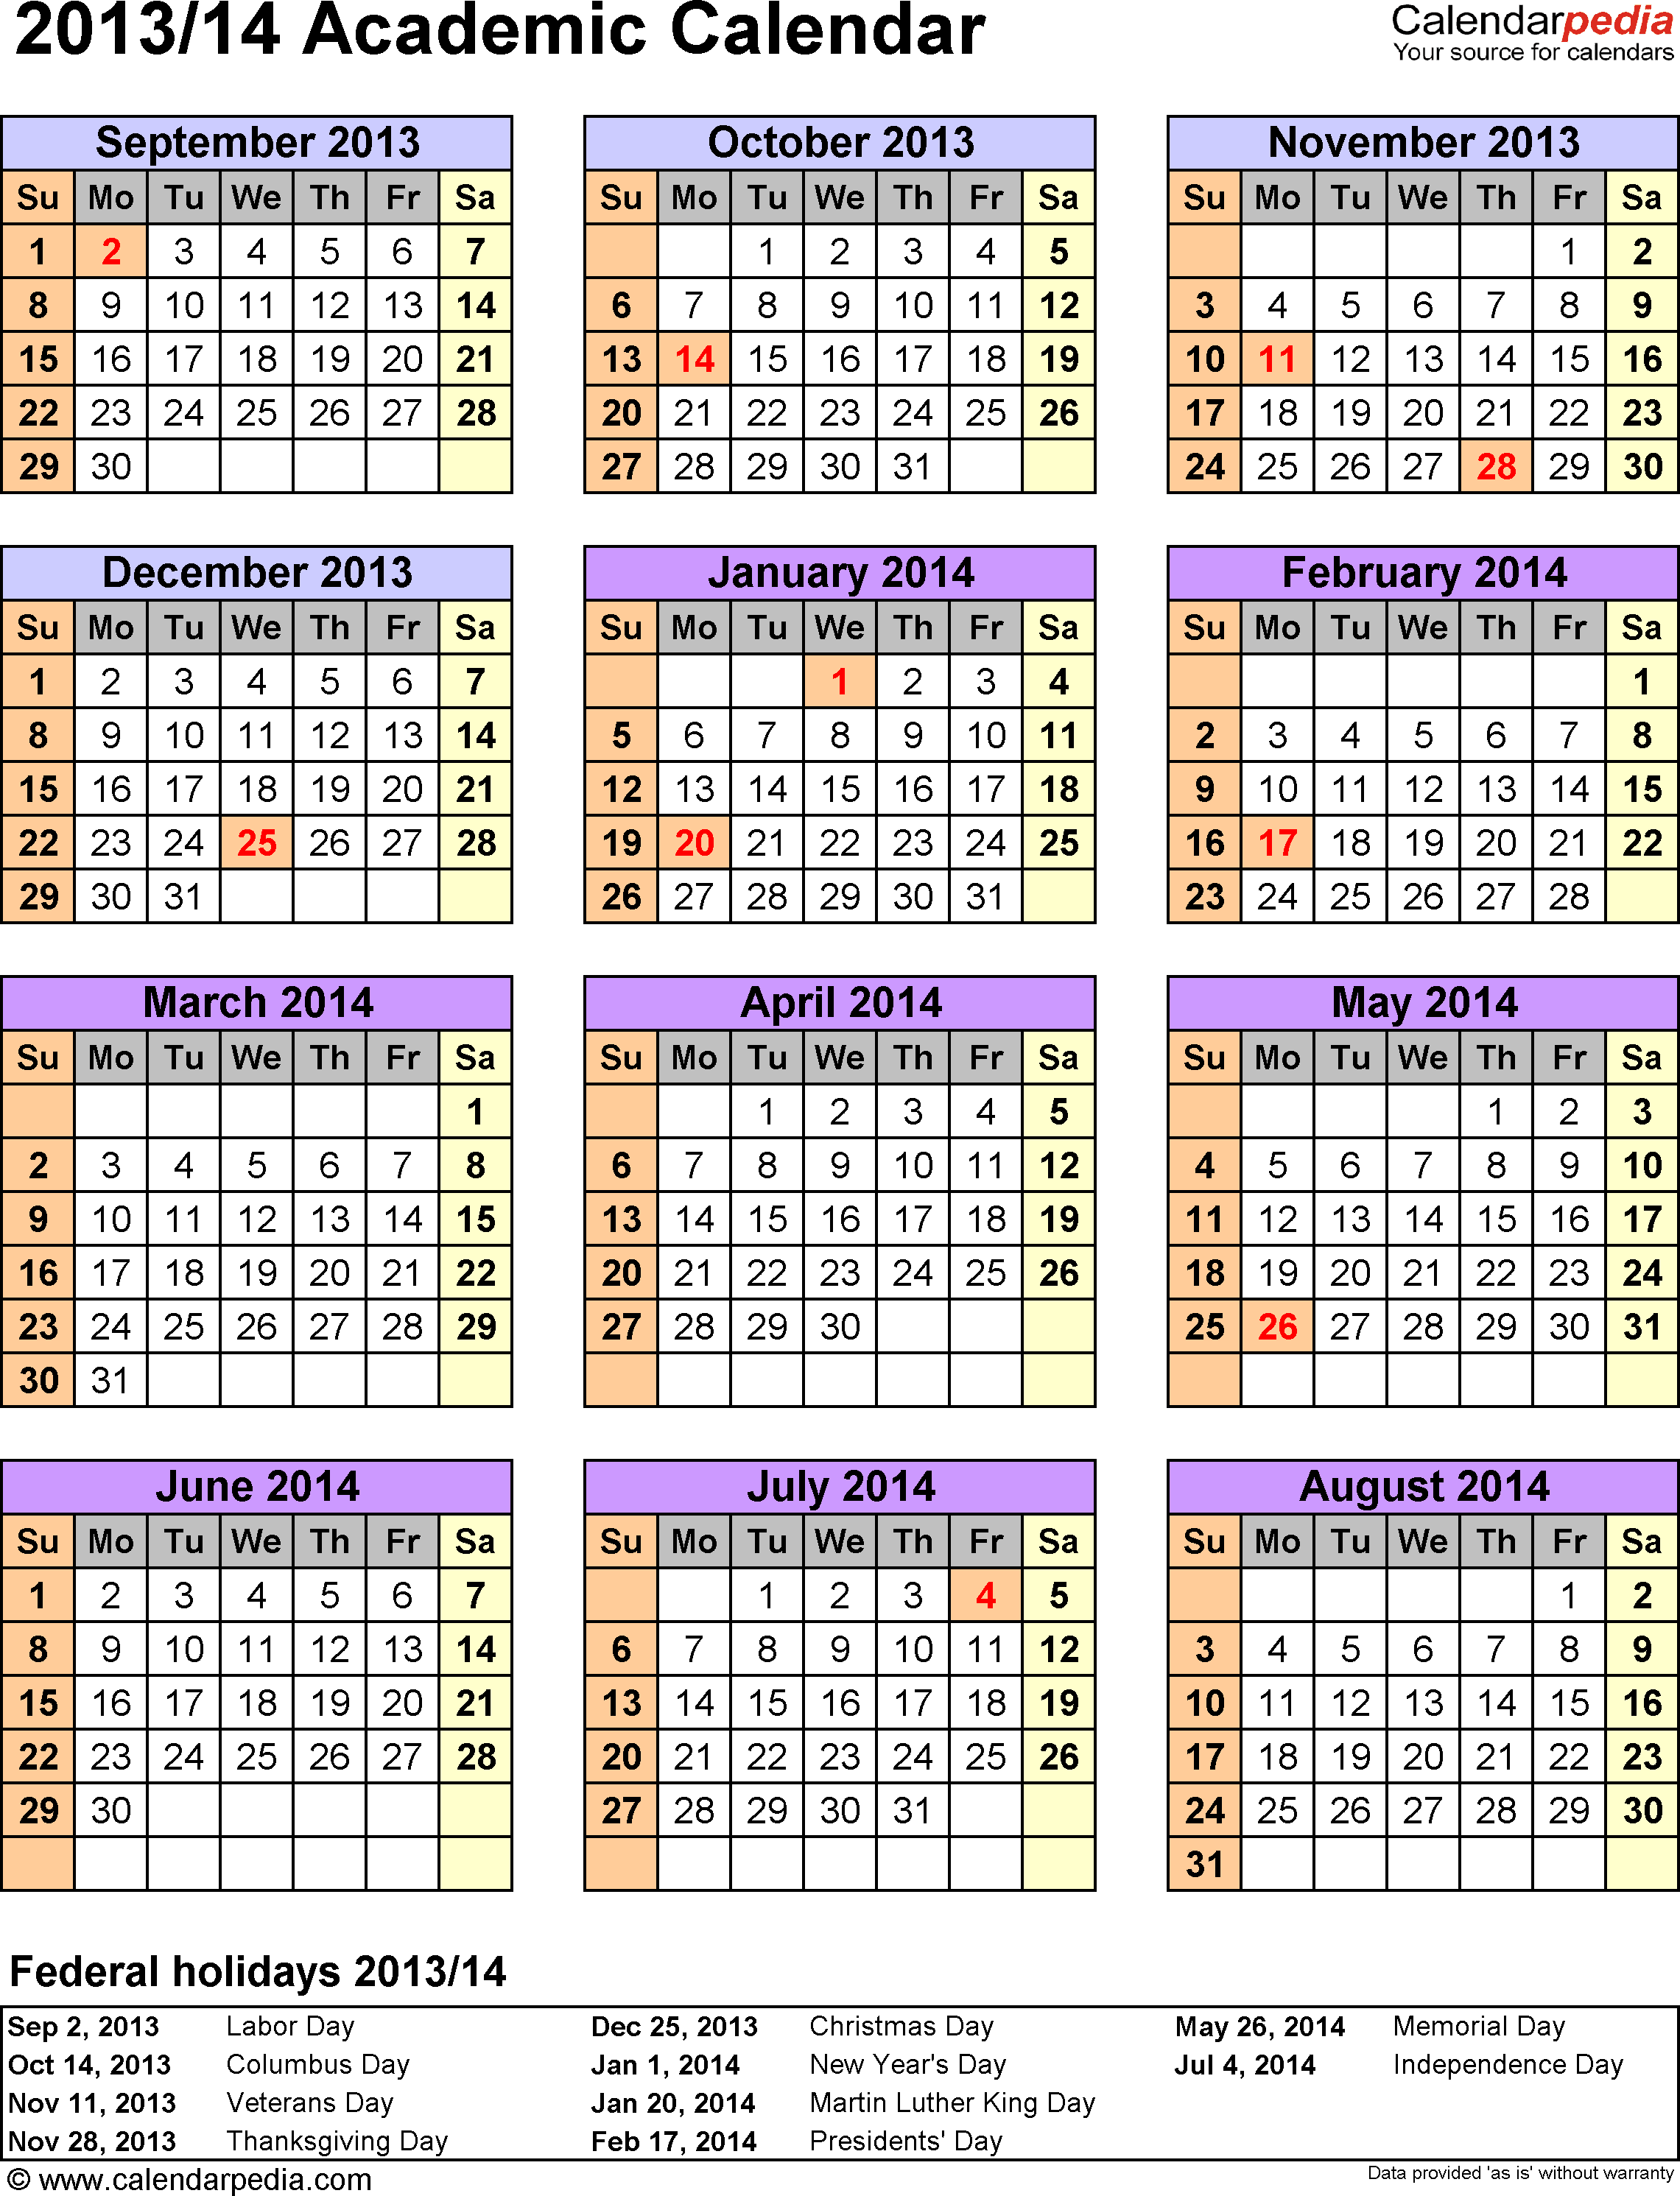 Template 5: Academic calendar 2013/14 for Word, portrait, 1 page, year at a glance